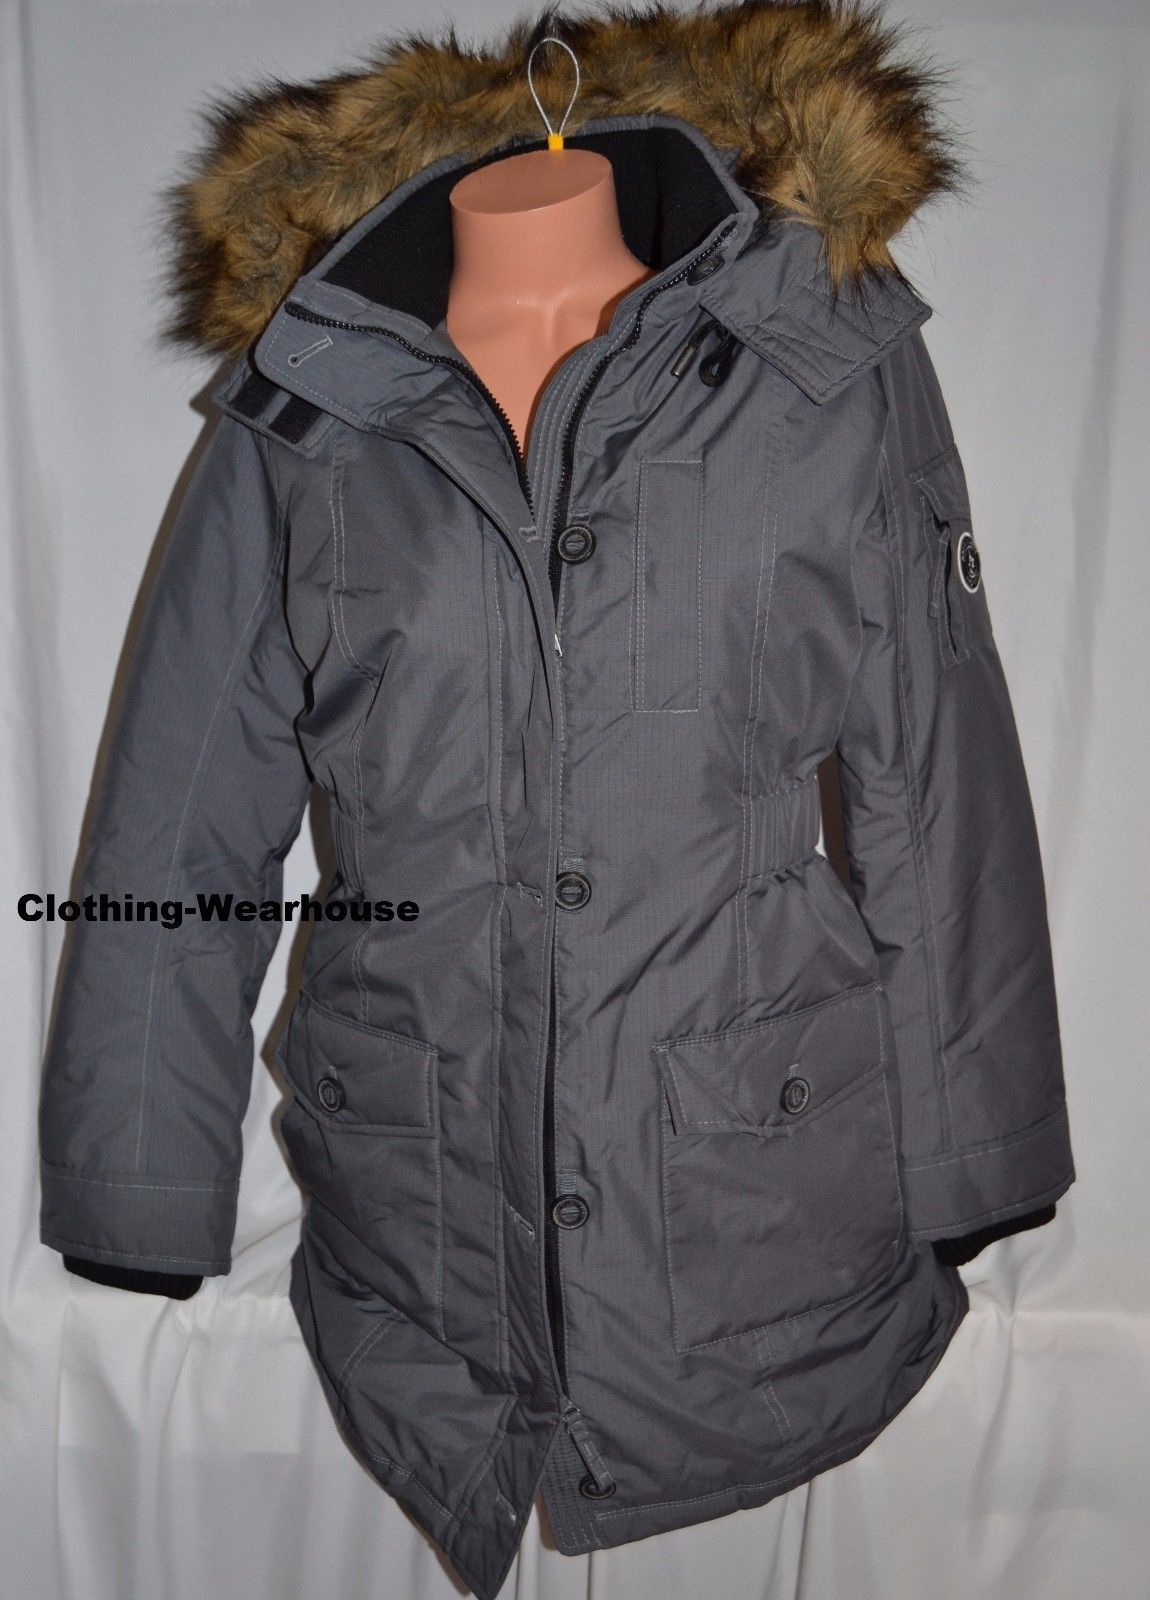 f2e2946700f S l1600. S l1600. Previous. NEW Abercrombie & Fitch Womens Hooded Arctic Parka  Jacket Coat ...